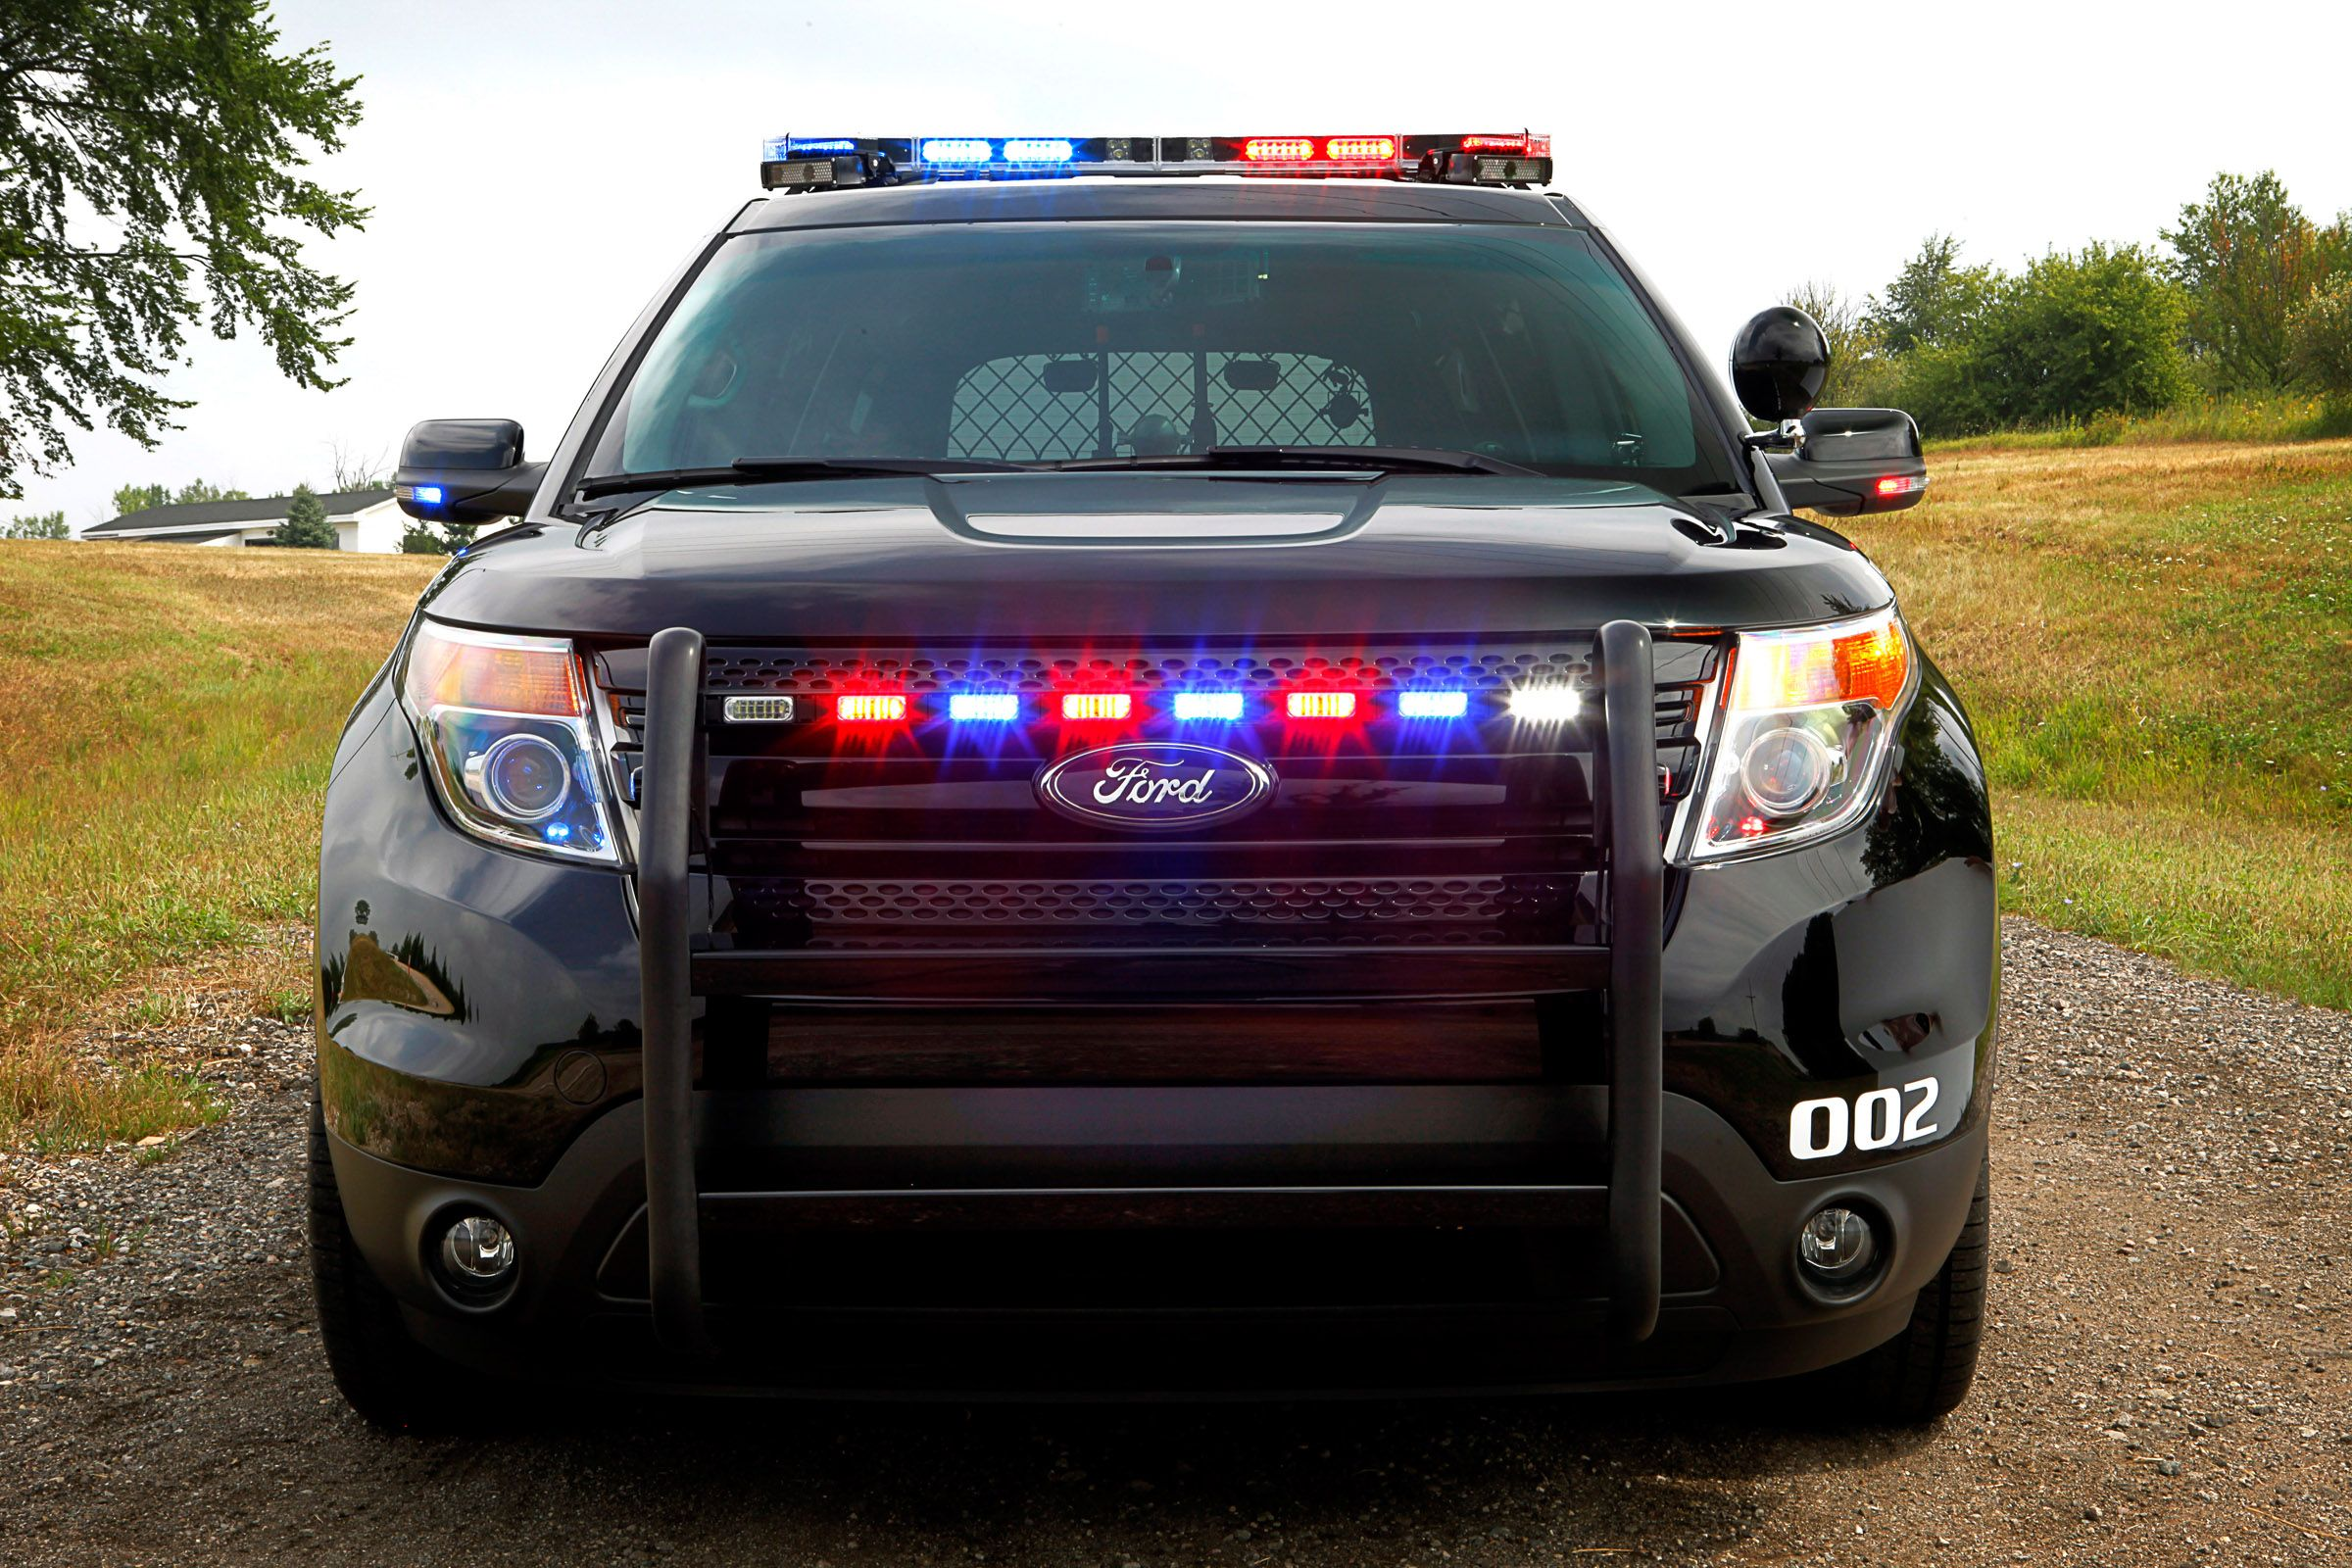 Ford Police Interceptor Utility Vehicle Picture 41460 Ford